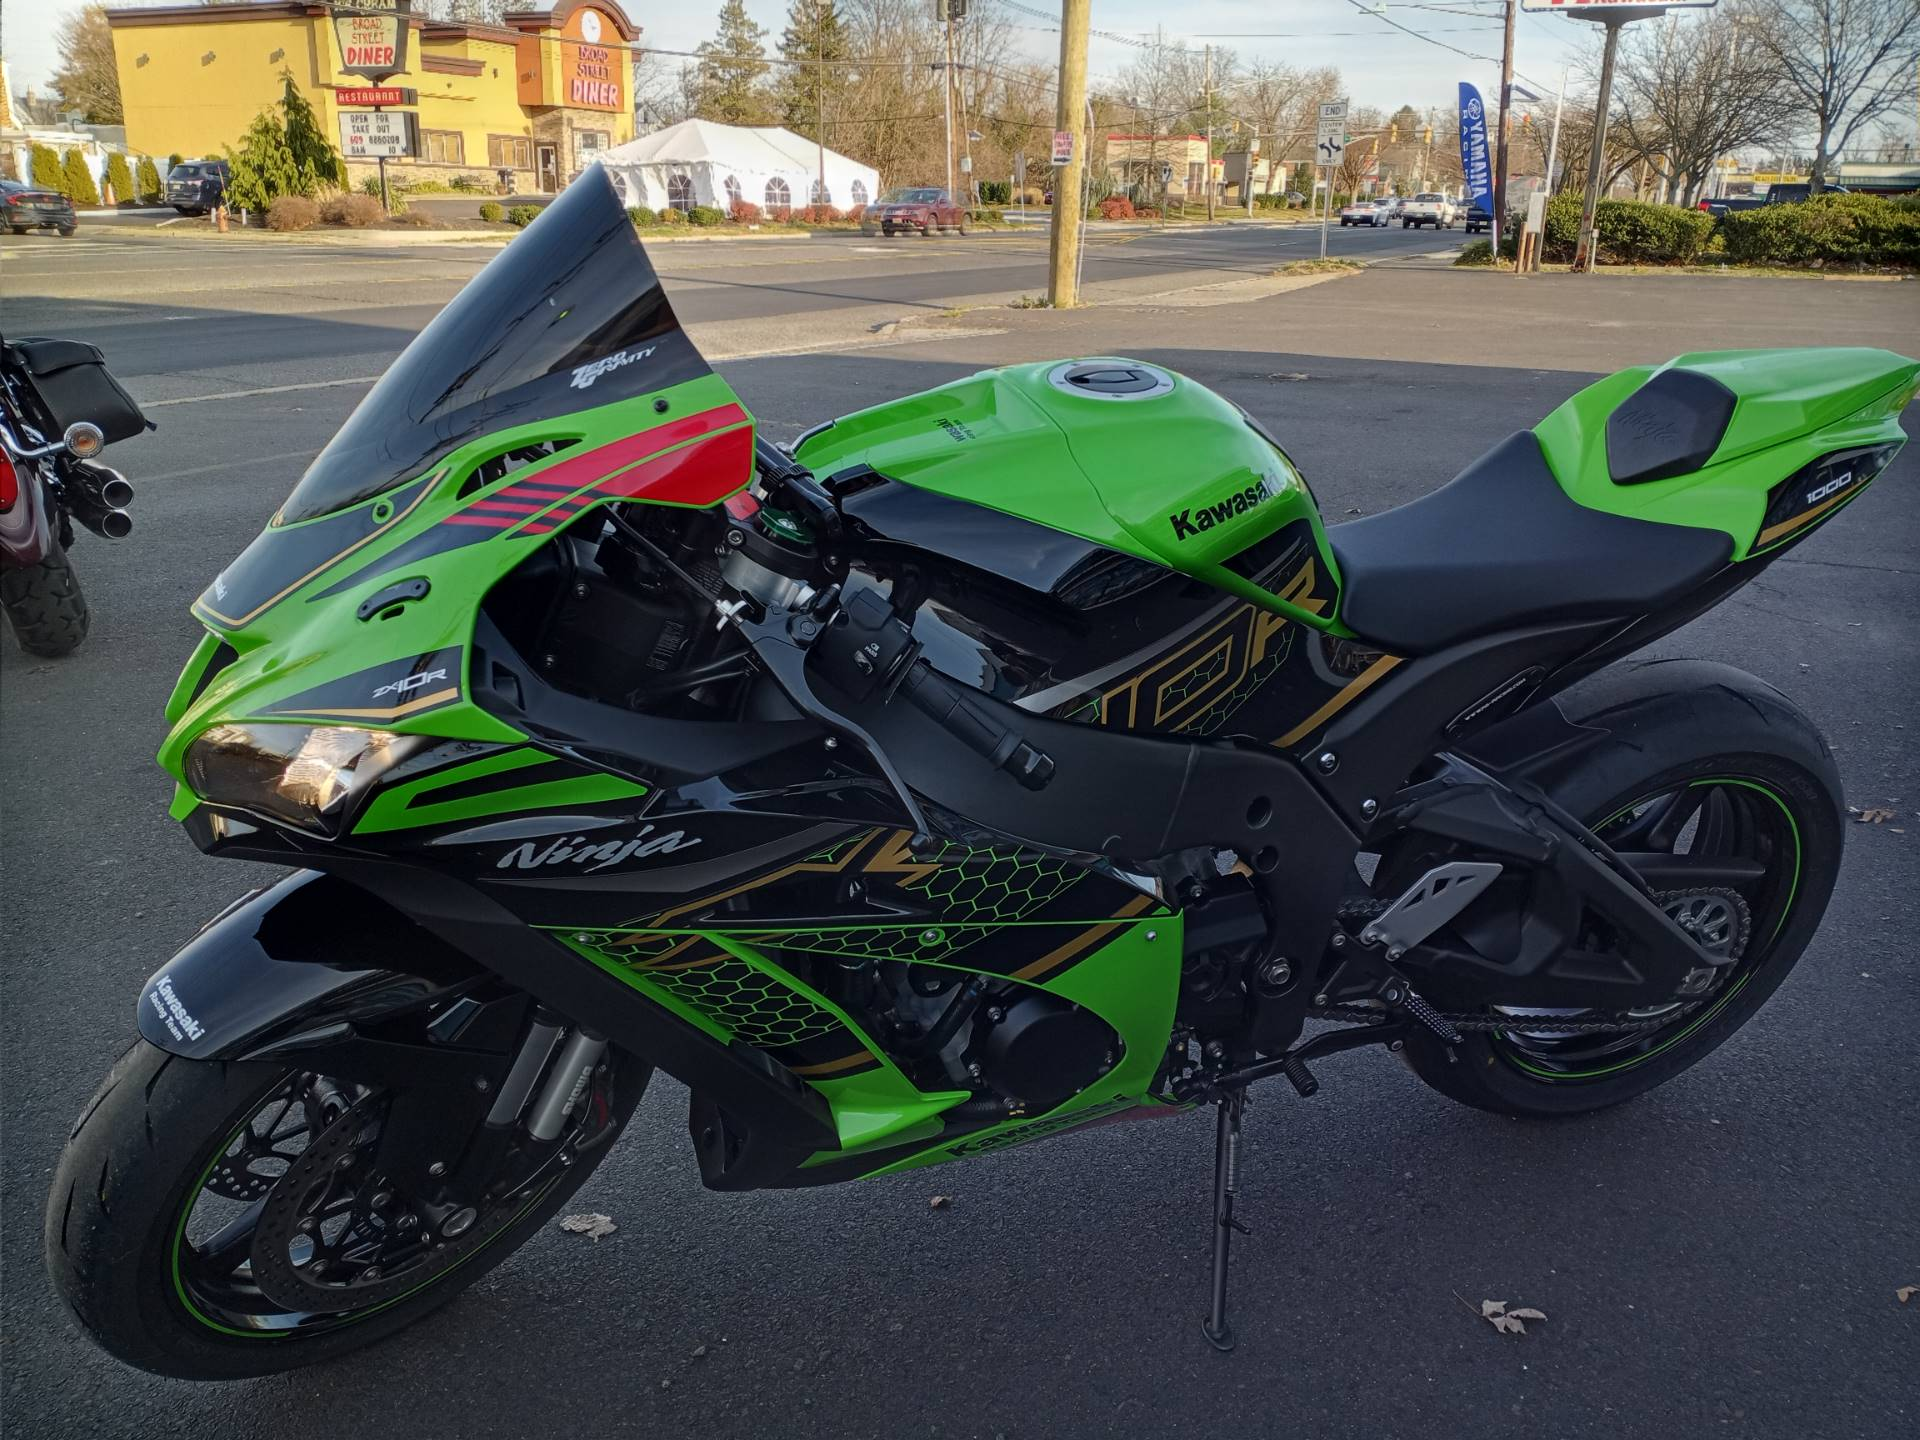 2020 Kawasaki Ninja ZX-10R KRT Edition in Hamilton, New Jersey - Photo 2